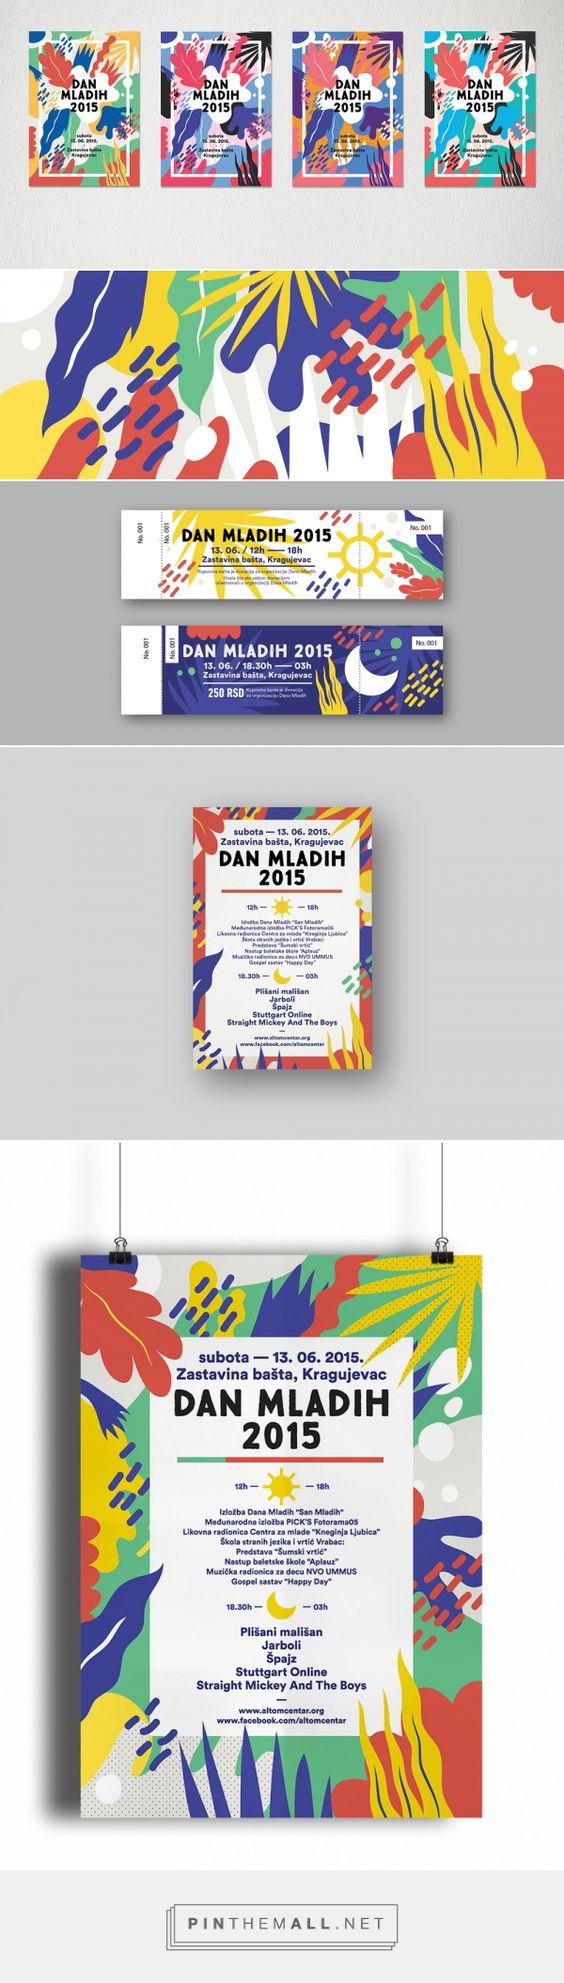 dans-ta-pub-creation-brand-identity-compilation-18